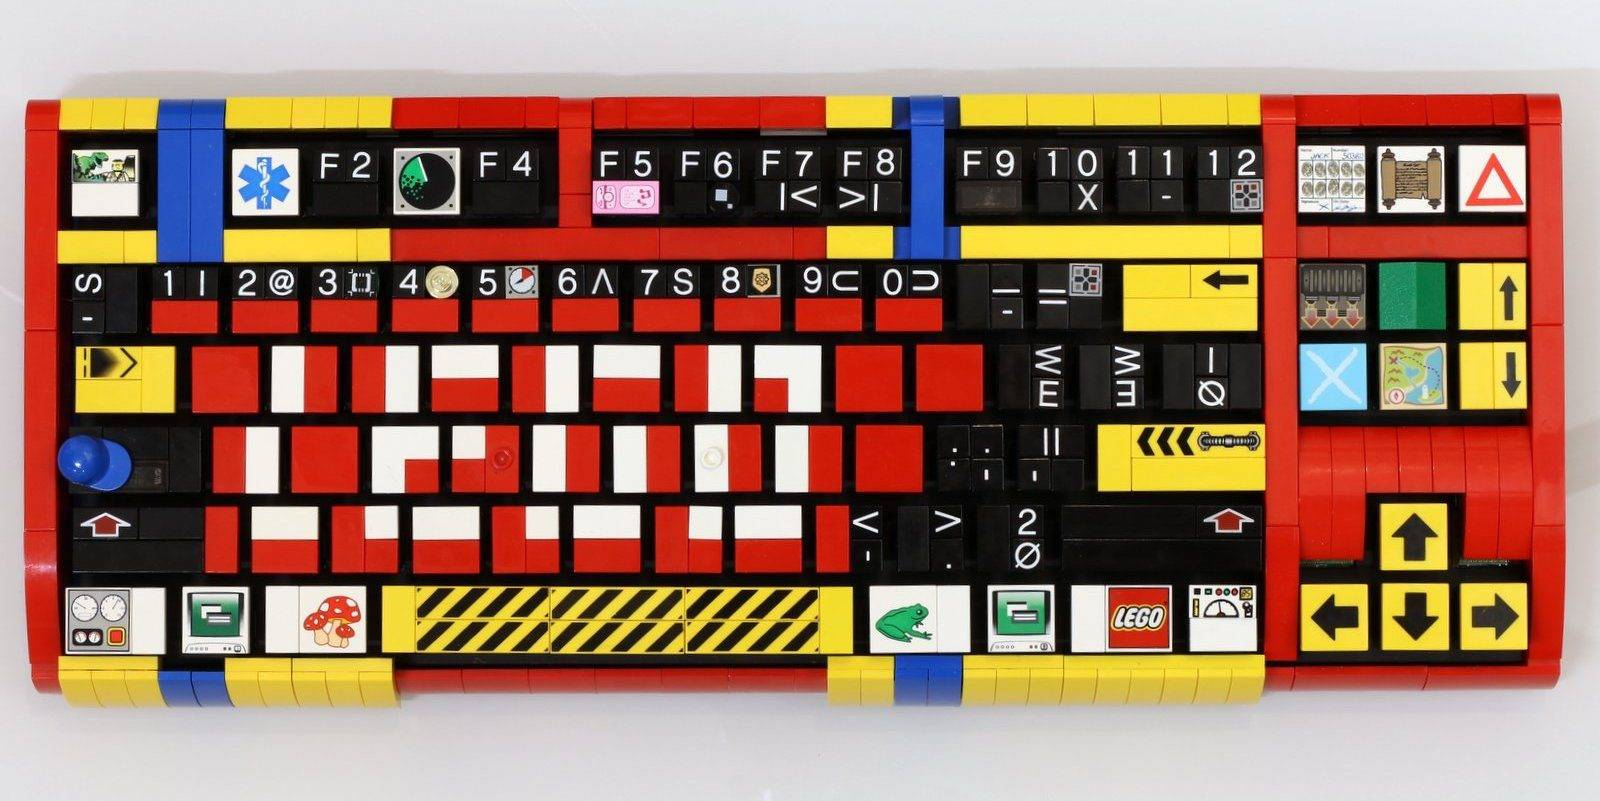 lego keyboard caps lock key